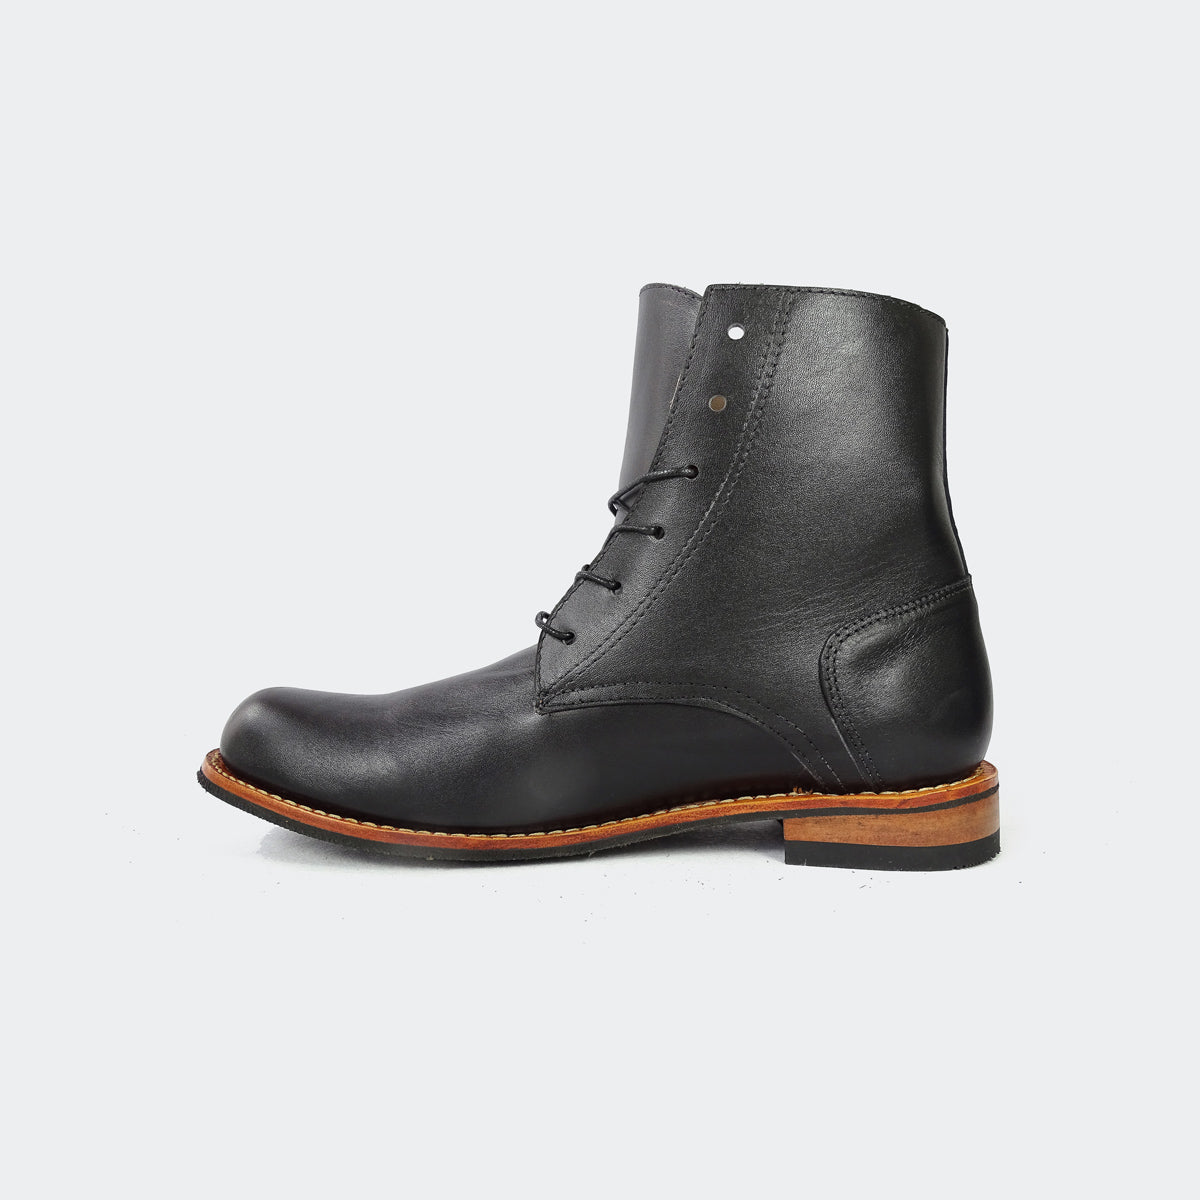 AYH1247 The Gentleman´s boot